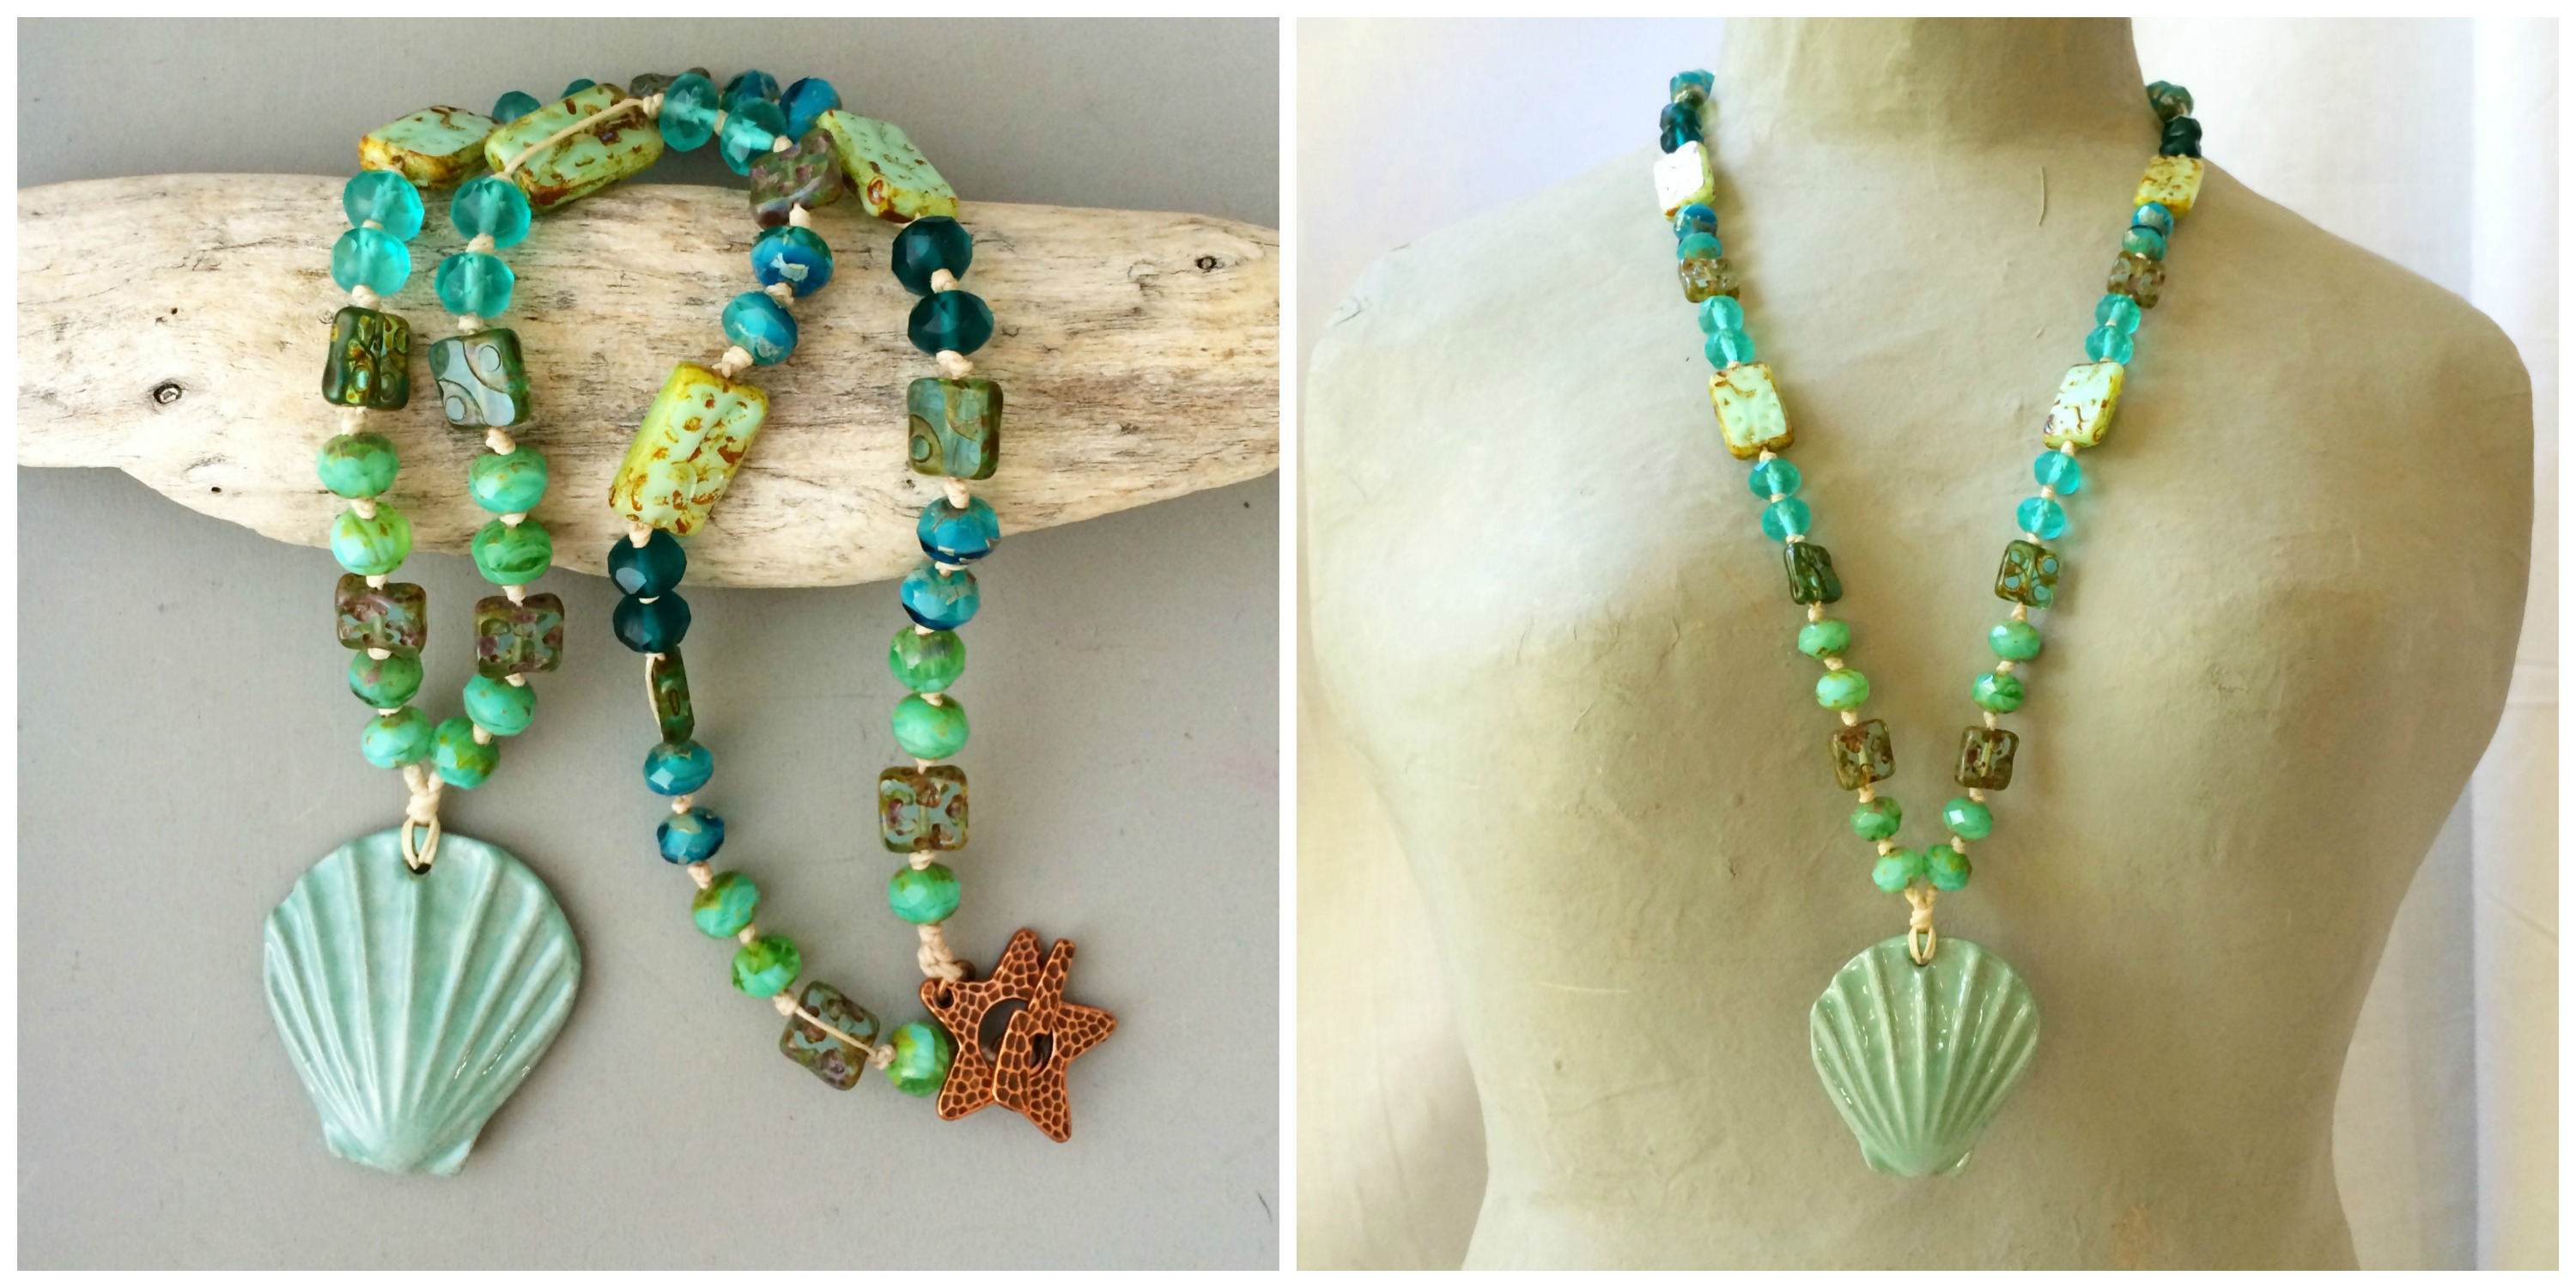 Seashell necklace collage